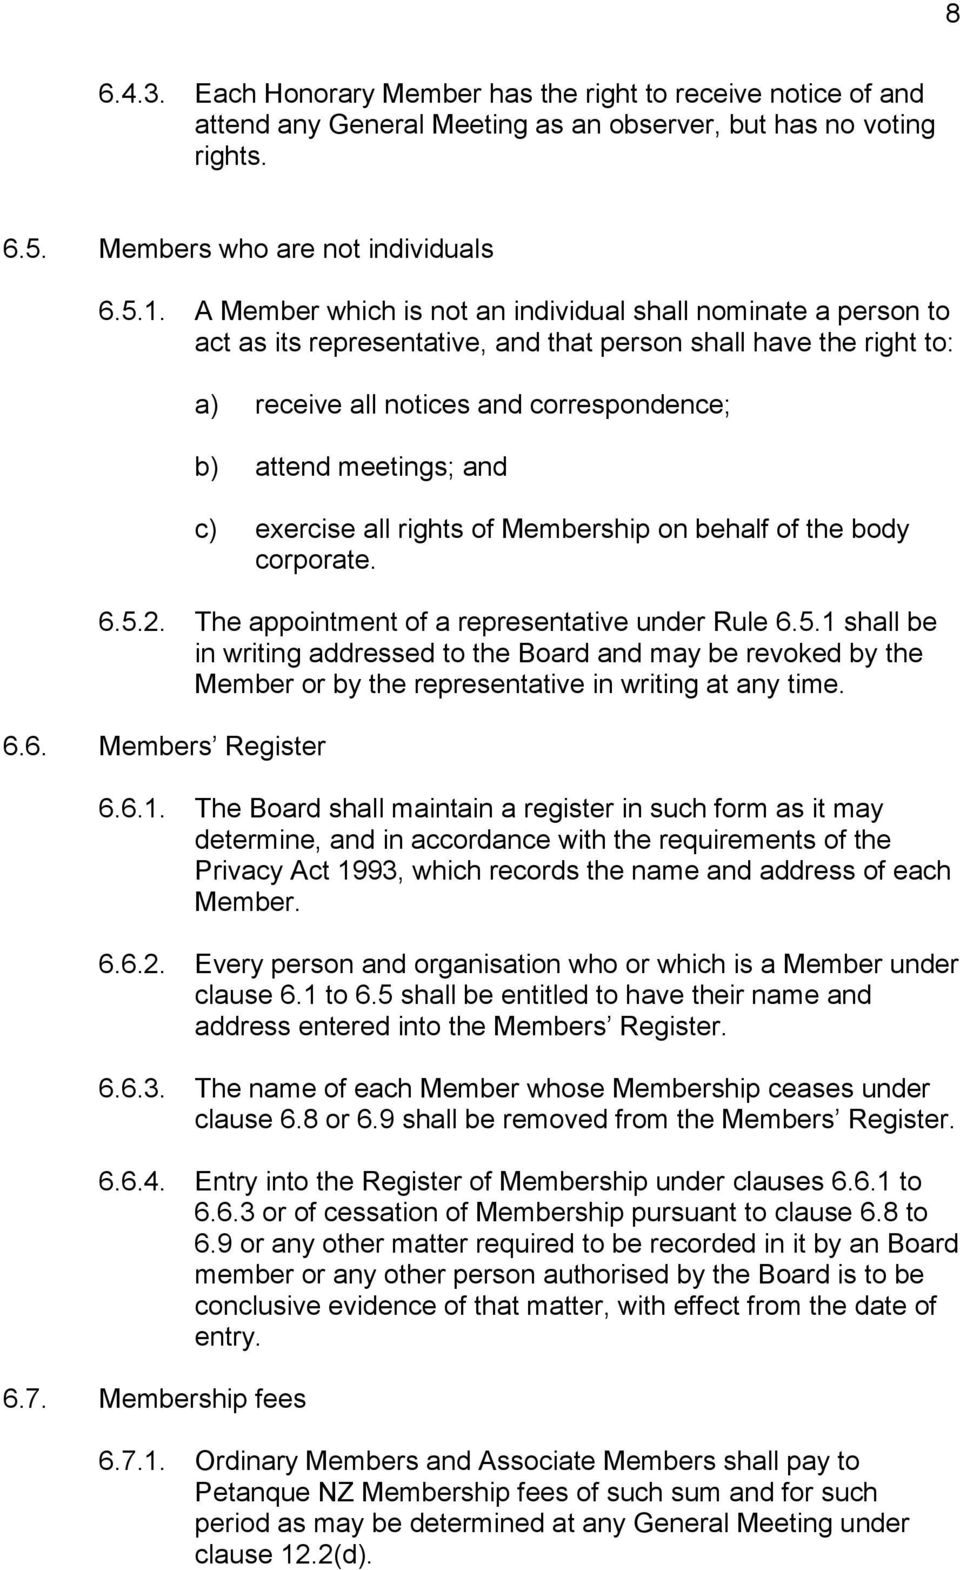 c) exercise all rights of Membership on behalf of the body corporate. 6.5.2. The appointment of a representative under Rule 6.5.1 shall be in writing addressed to the Board and may be revoked by the Member or by the representative in writing at any time.